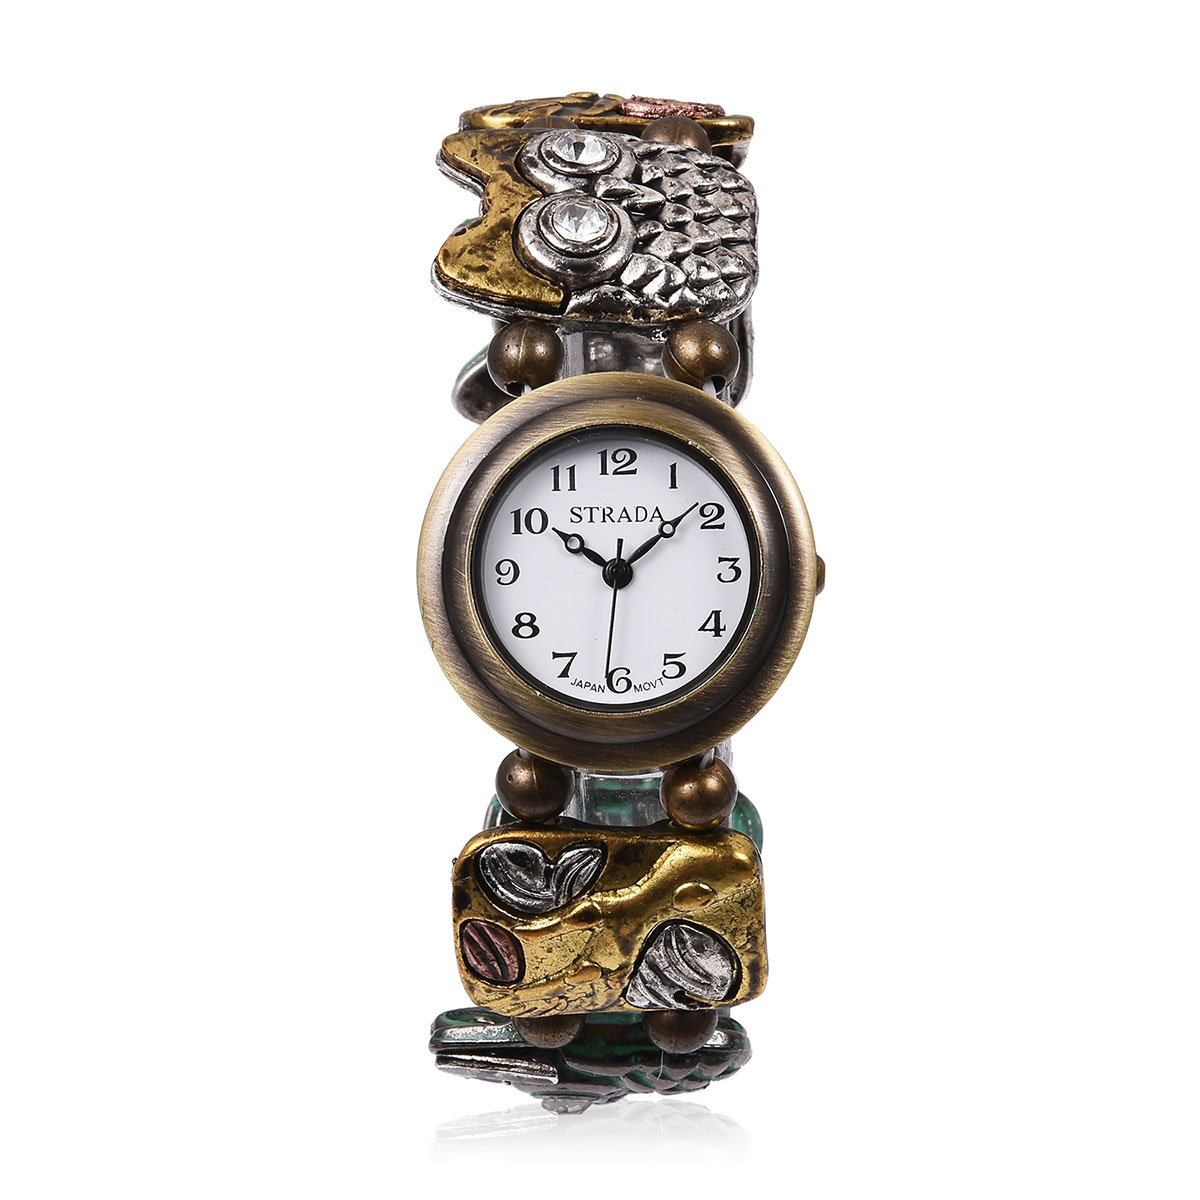 7755ba9c6 STRADA Austrian Crystal Japanese Movement Water Resistant Enameled Bracelet  Watch (Stretchable) in Multitone and Stainless Steel Back